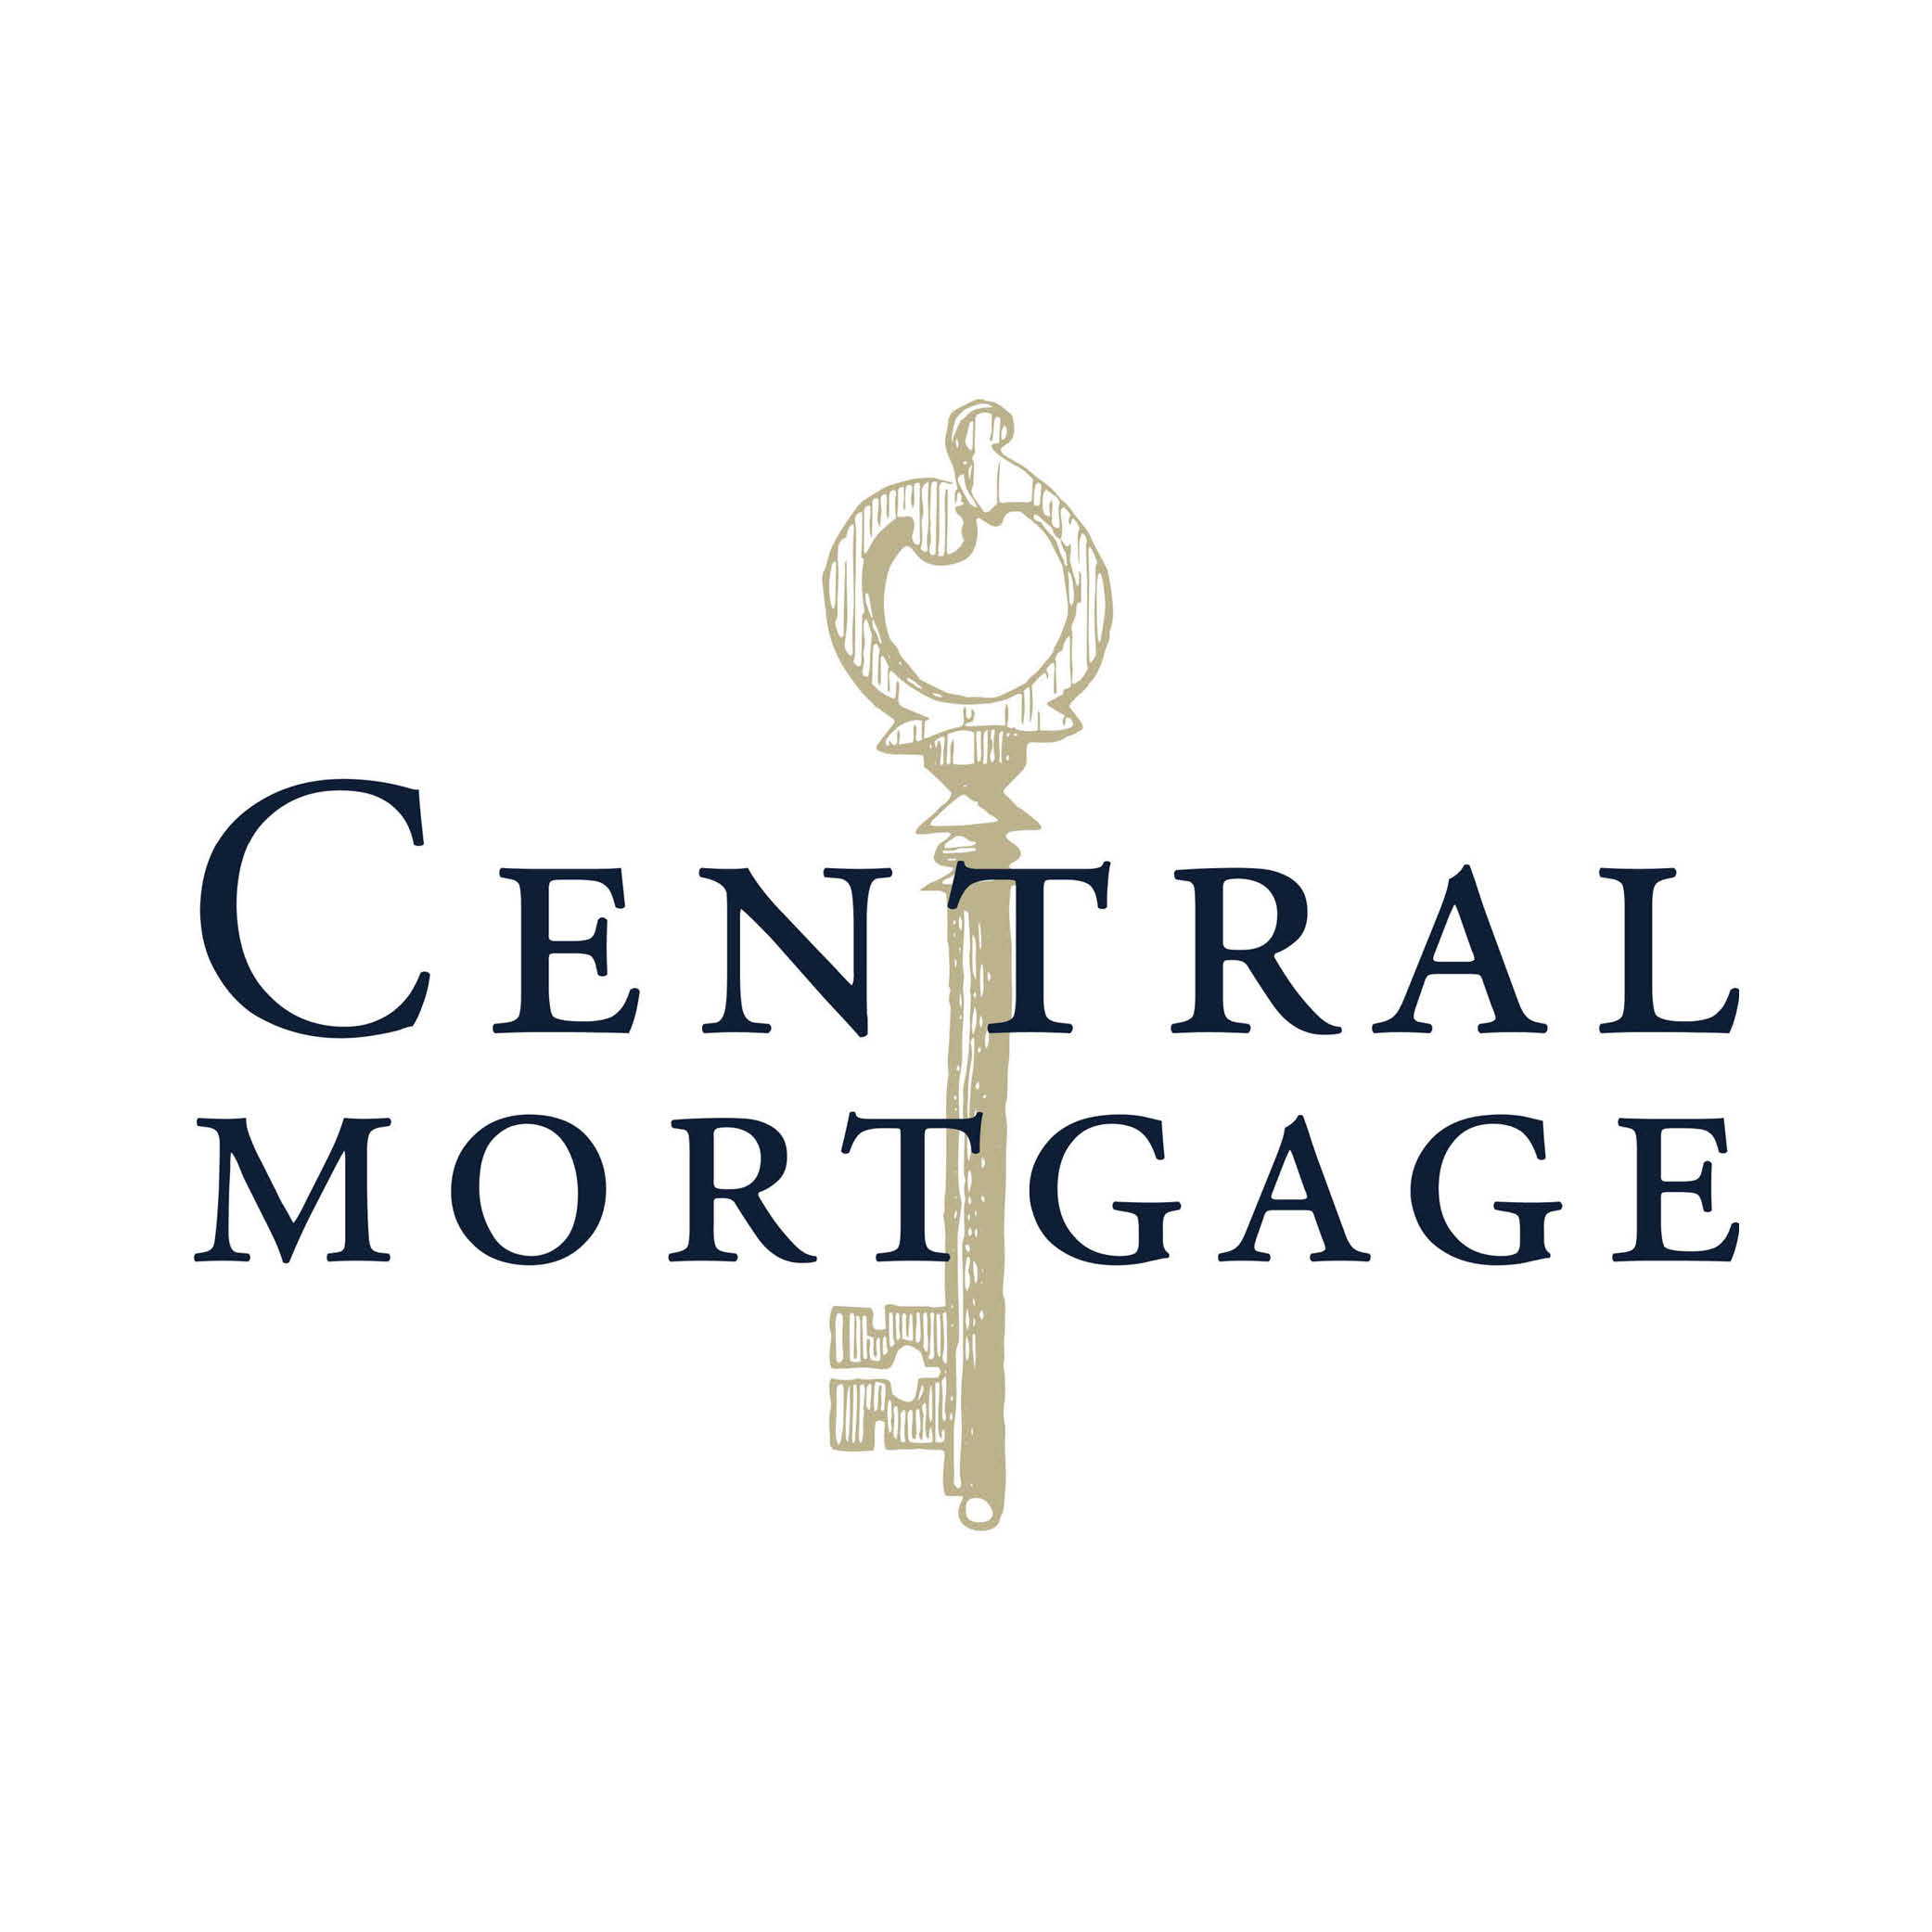 Central Mortgage